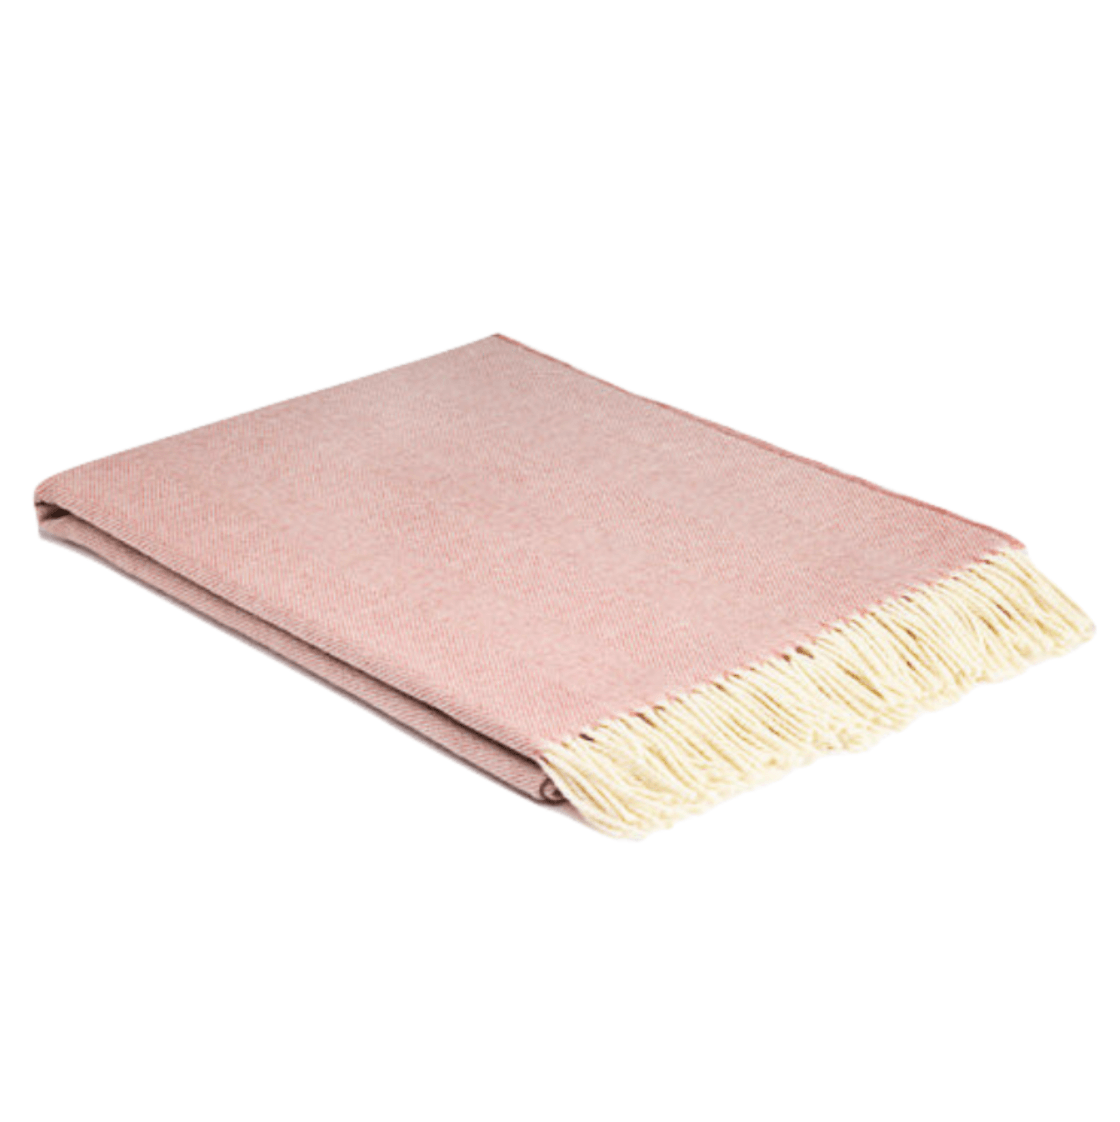 Rosebay Super Soft Herringbone Wool Throw - Barnbury